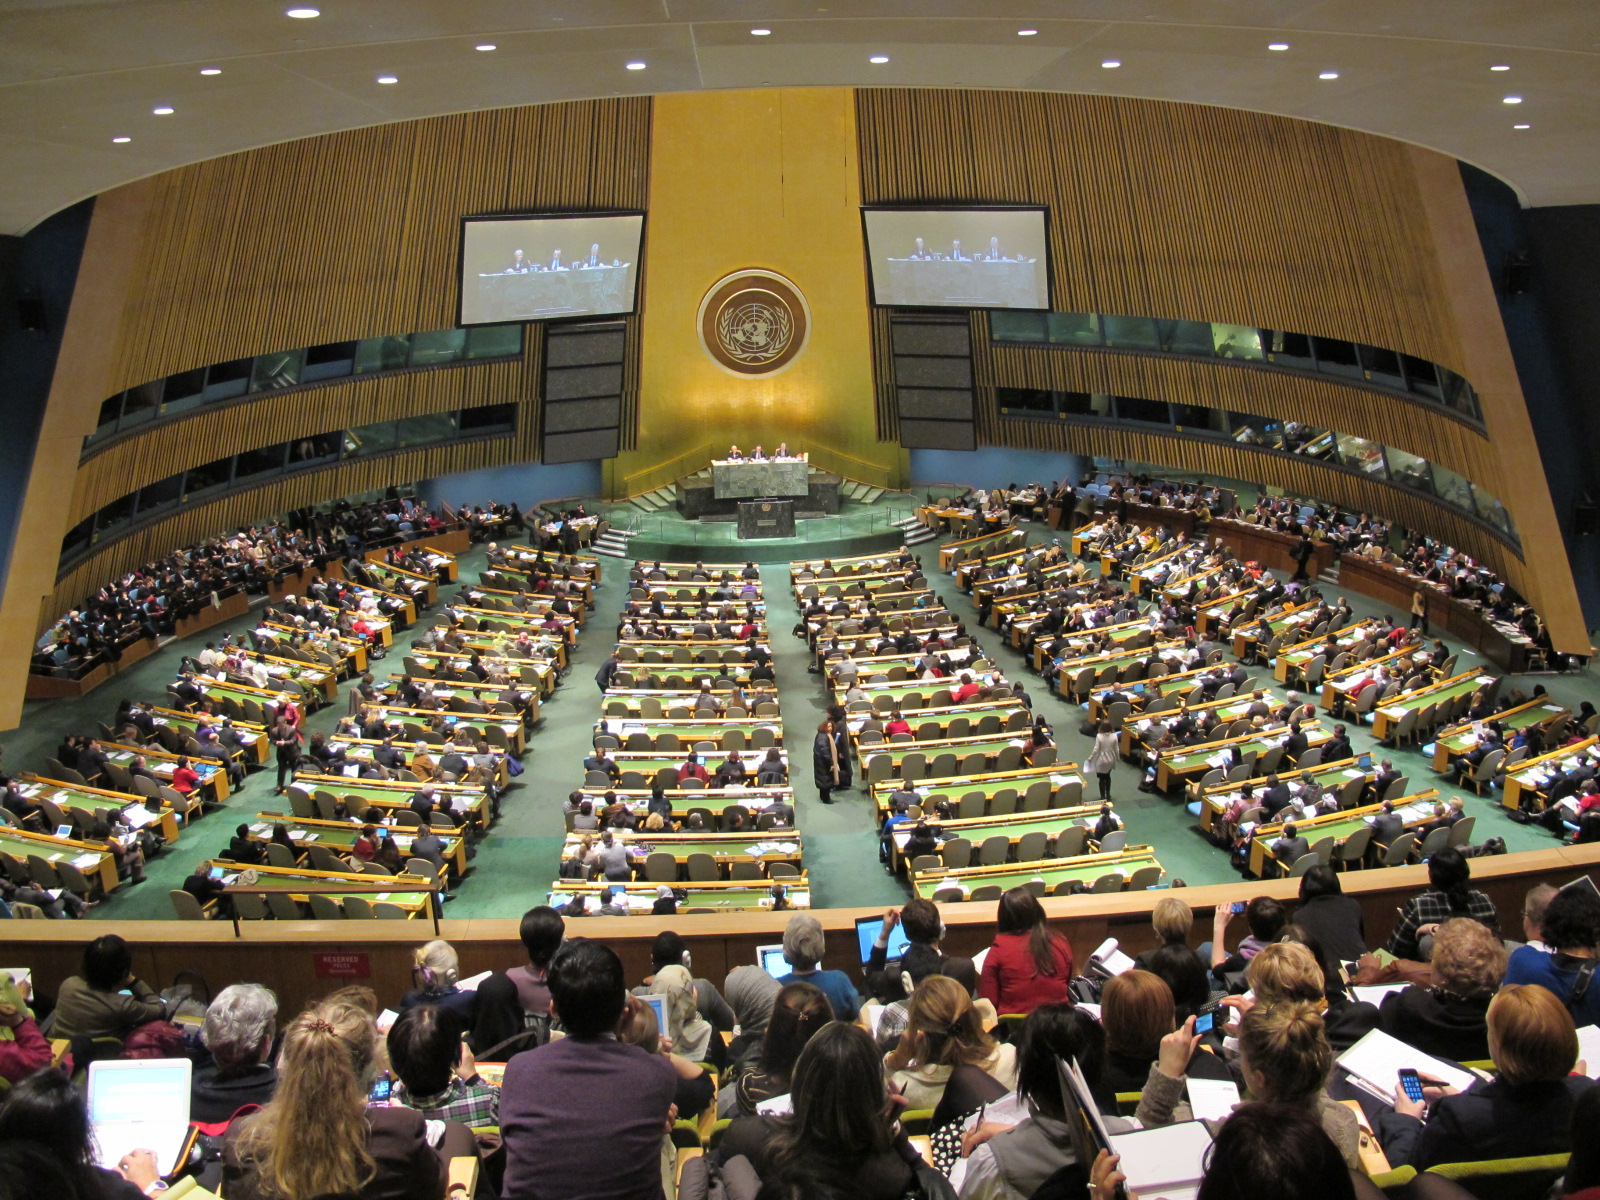 Gender perspectives at UN